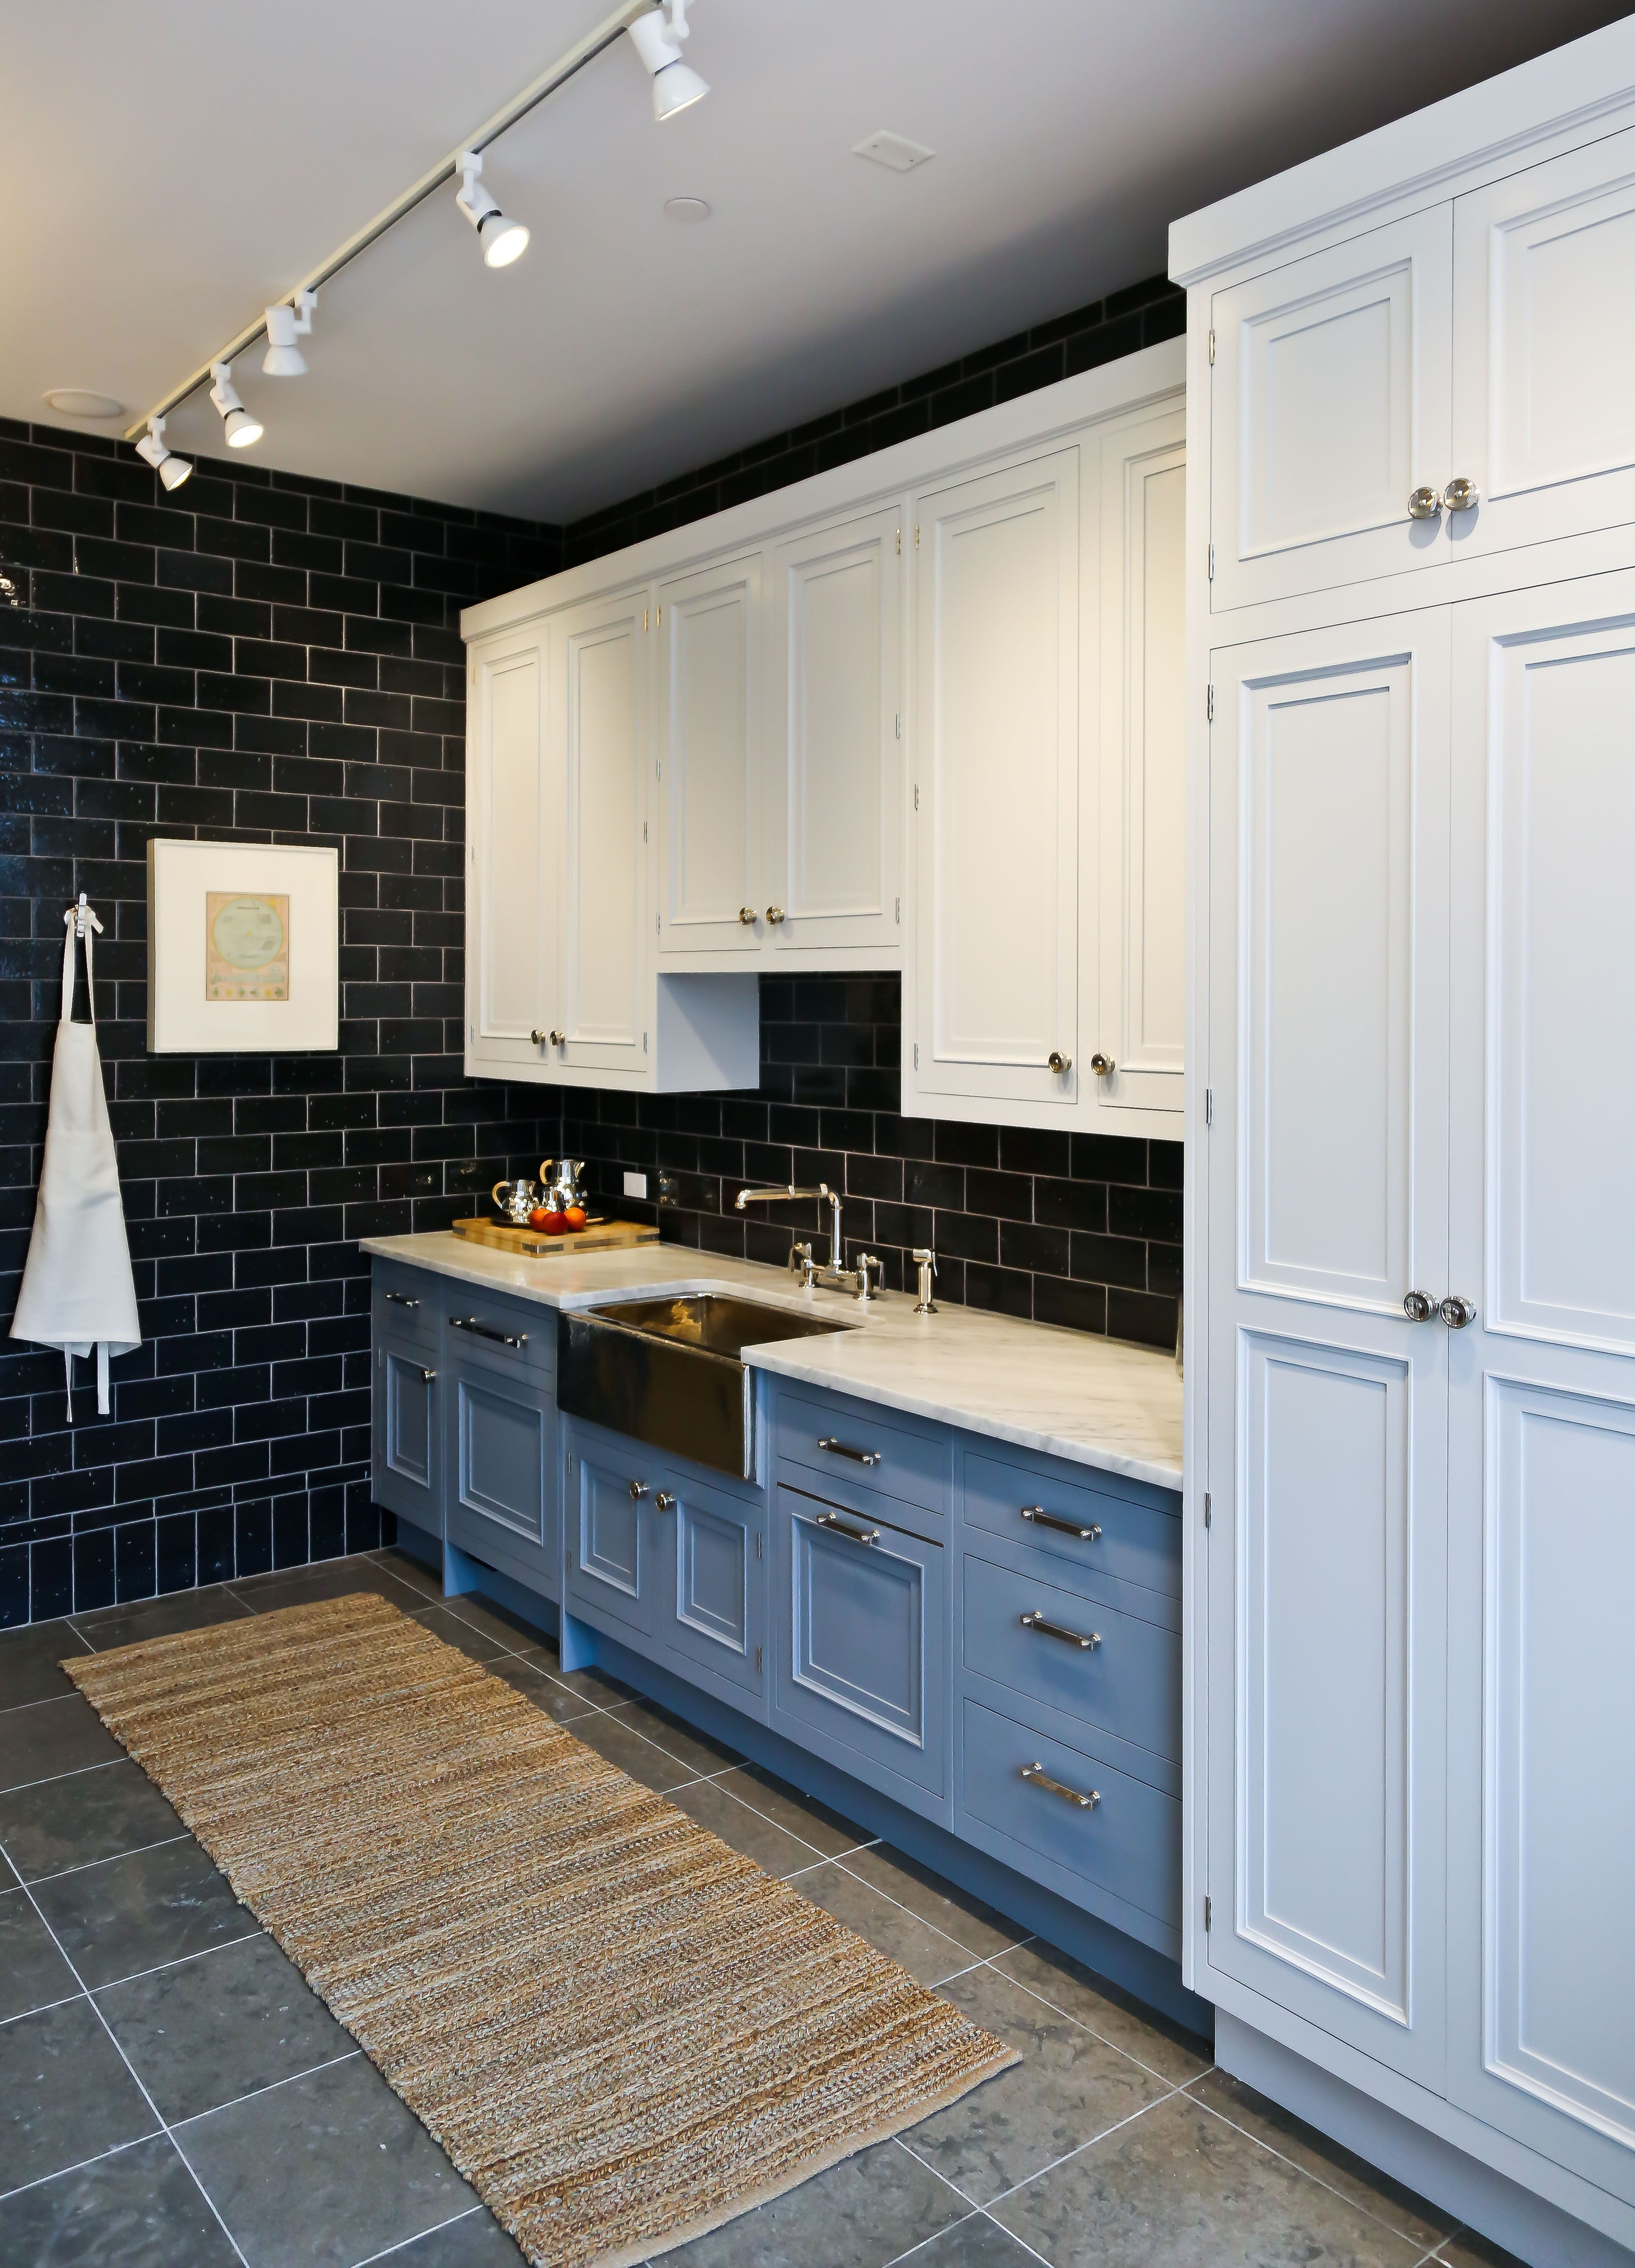 Cabinetry Collections Waterworks Waterworks Classic Kitchen Cabinets Cabinetry Design Country Kitchen